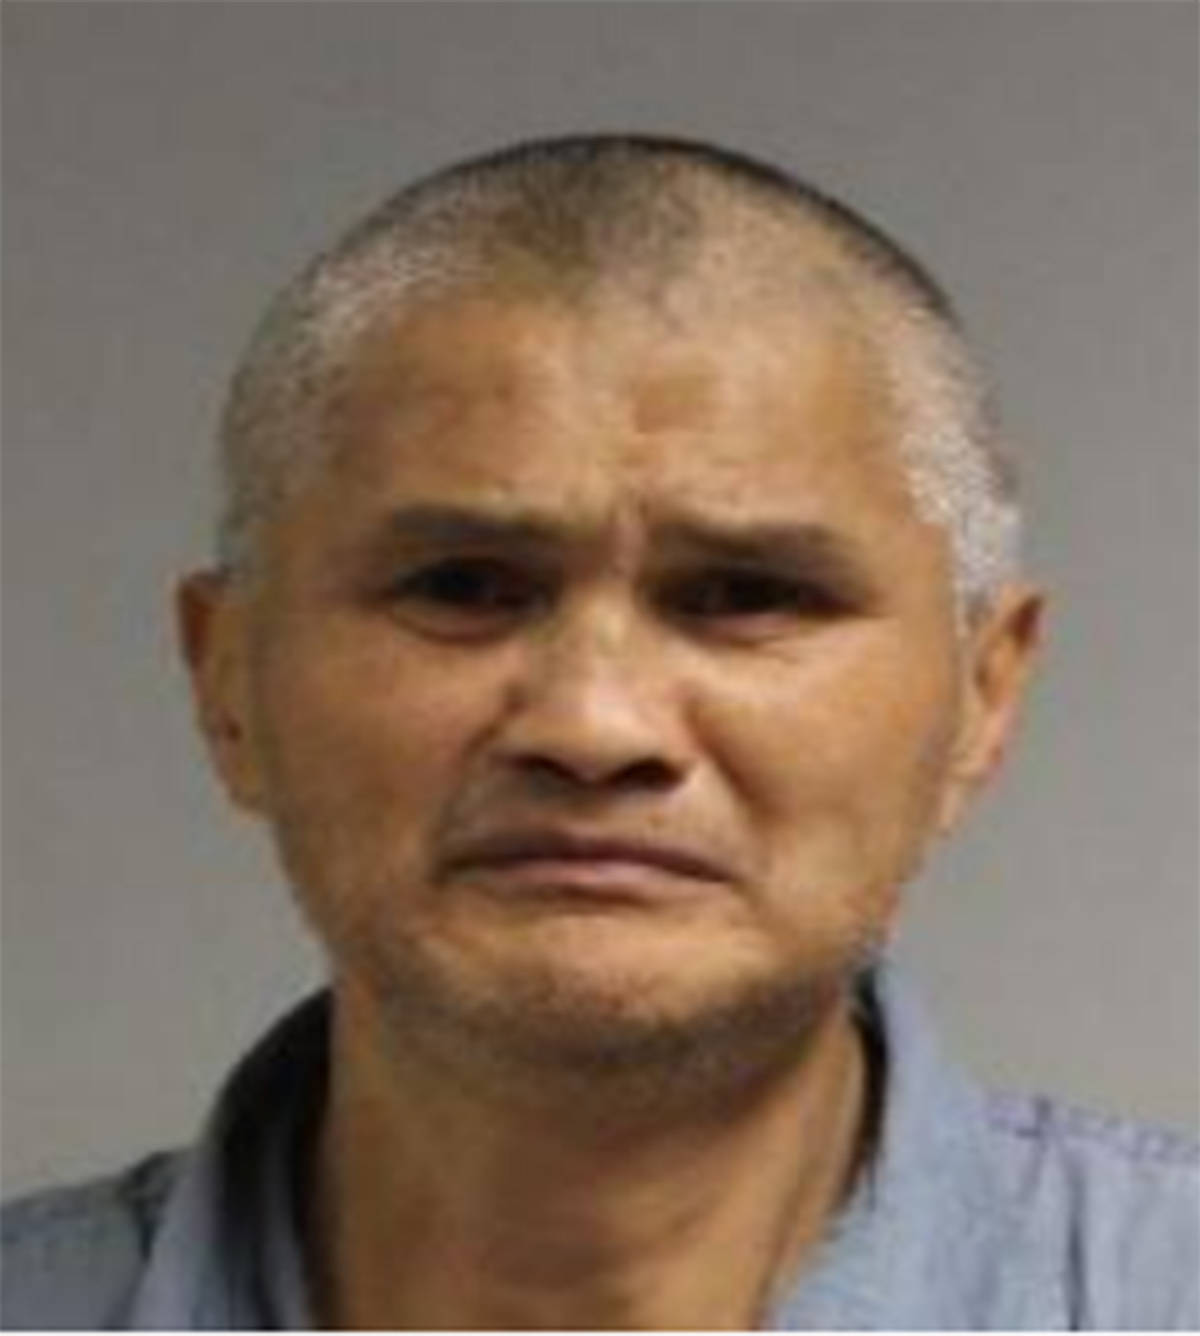 """Name: STEWART, Arthur Philip Age: 58 Height: 6'1"""" ft Weight: 185 lbs Hair: Grey Wanted: Sexual Assault Warrant in effect: March 9, 2021 Parole Jurisdiction: Vancouver, B.C."""